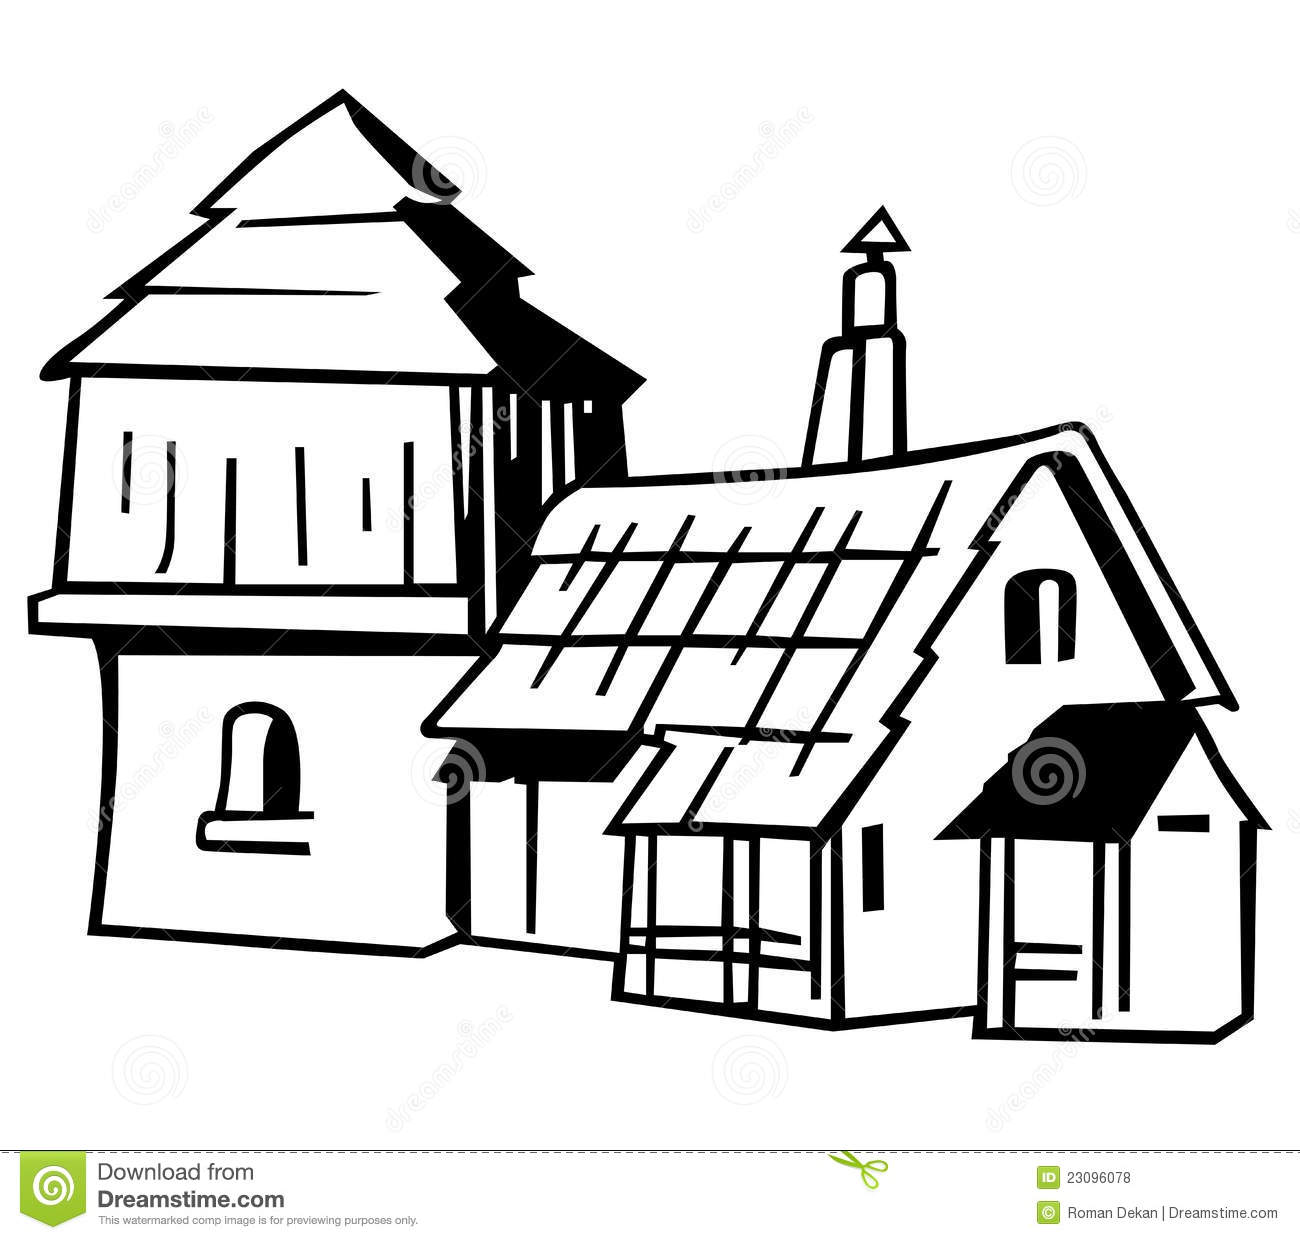 Village house - Black and White Cartoon Illustration, Vector.